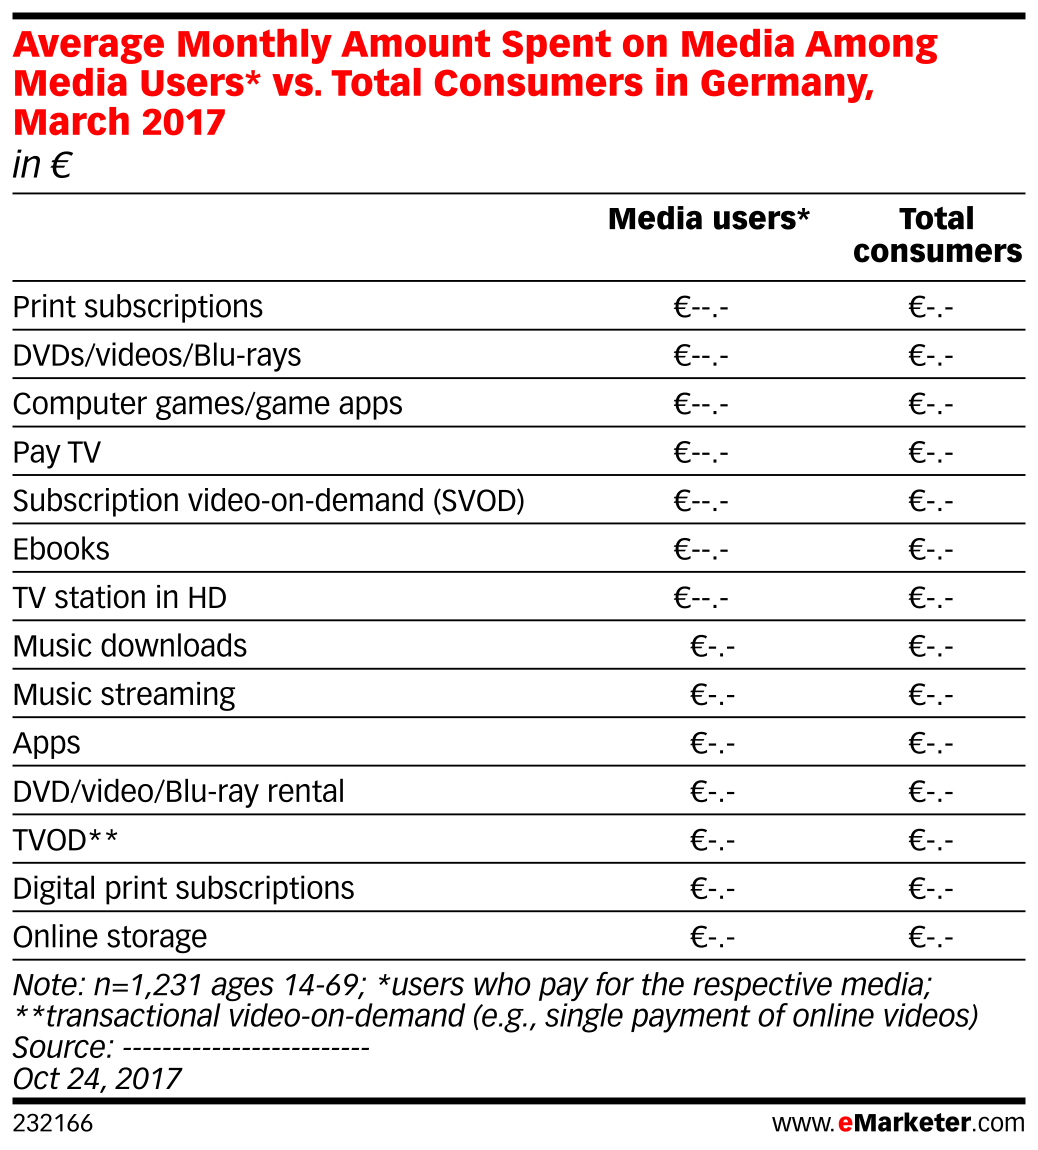 Average Monthly Amount Spent on Media Among Media Users* vs. Total Consumers in Germany, March 2017 (in €)